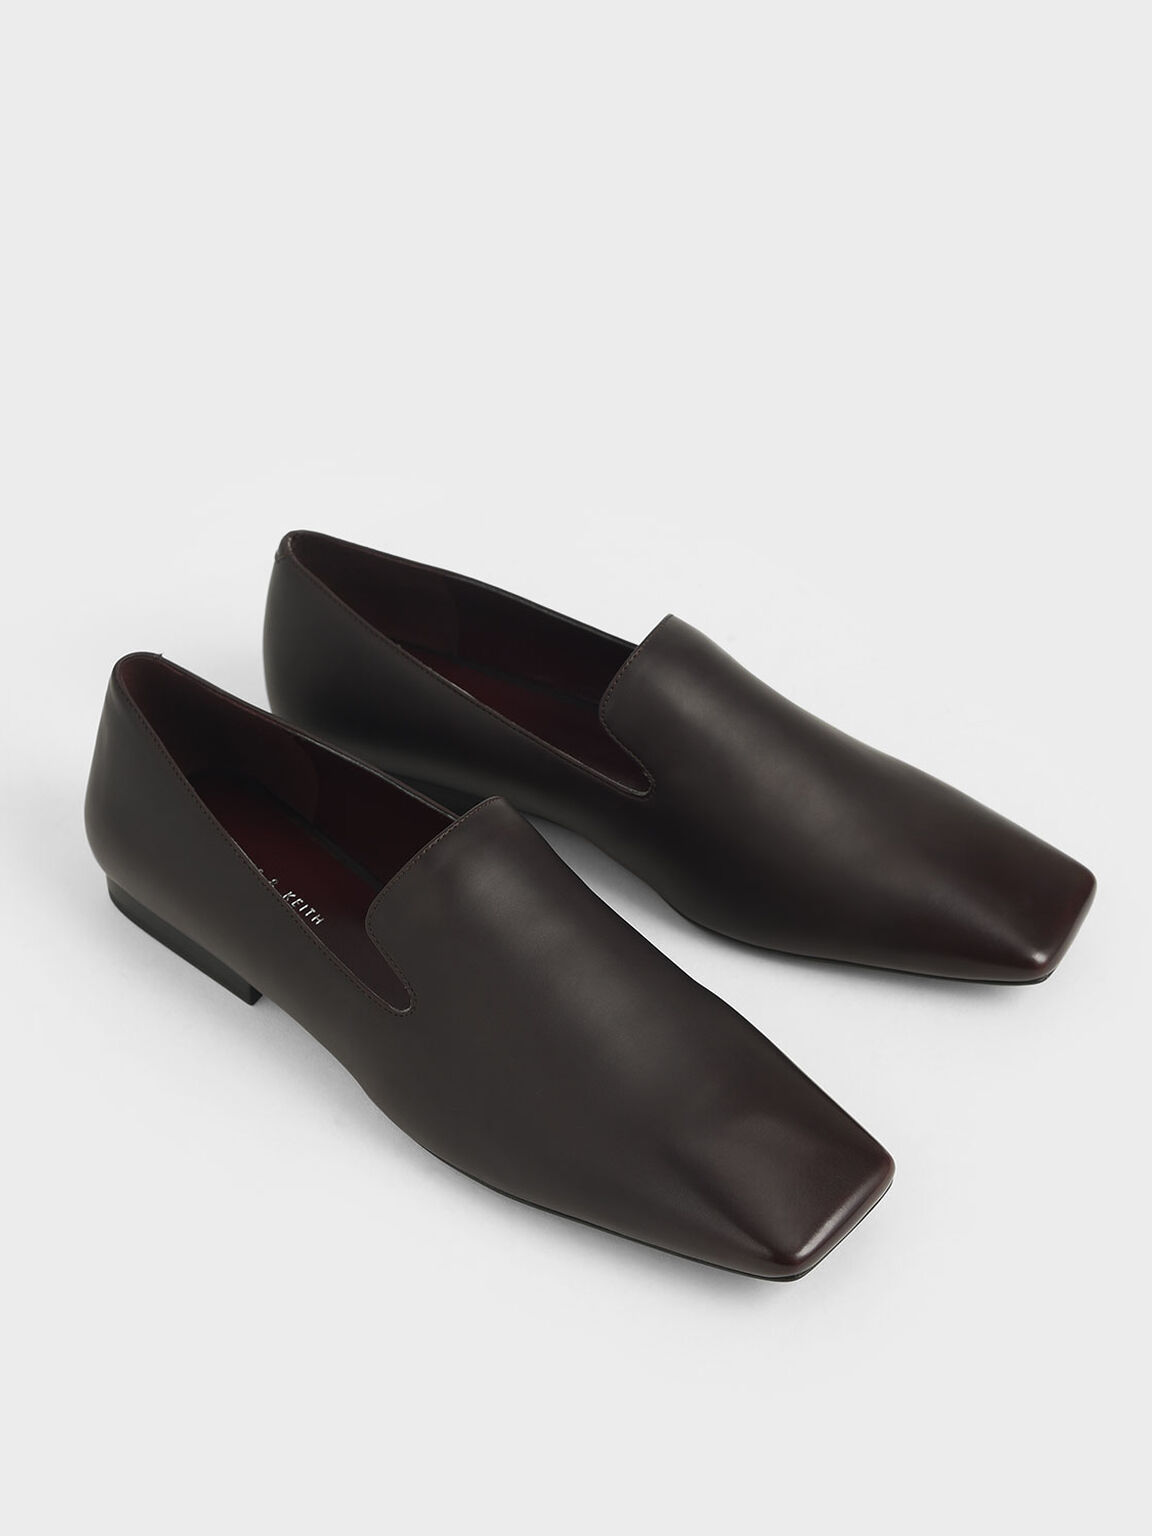 Brushed Effect Square Toe Loafers, Burgundy, hi-res